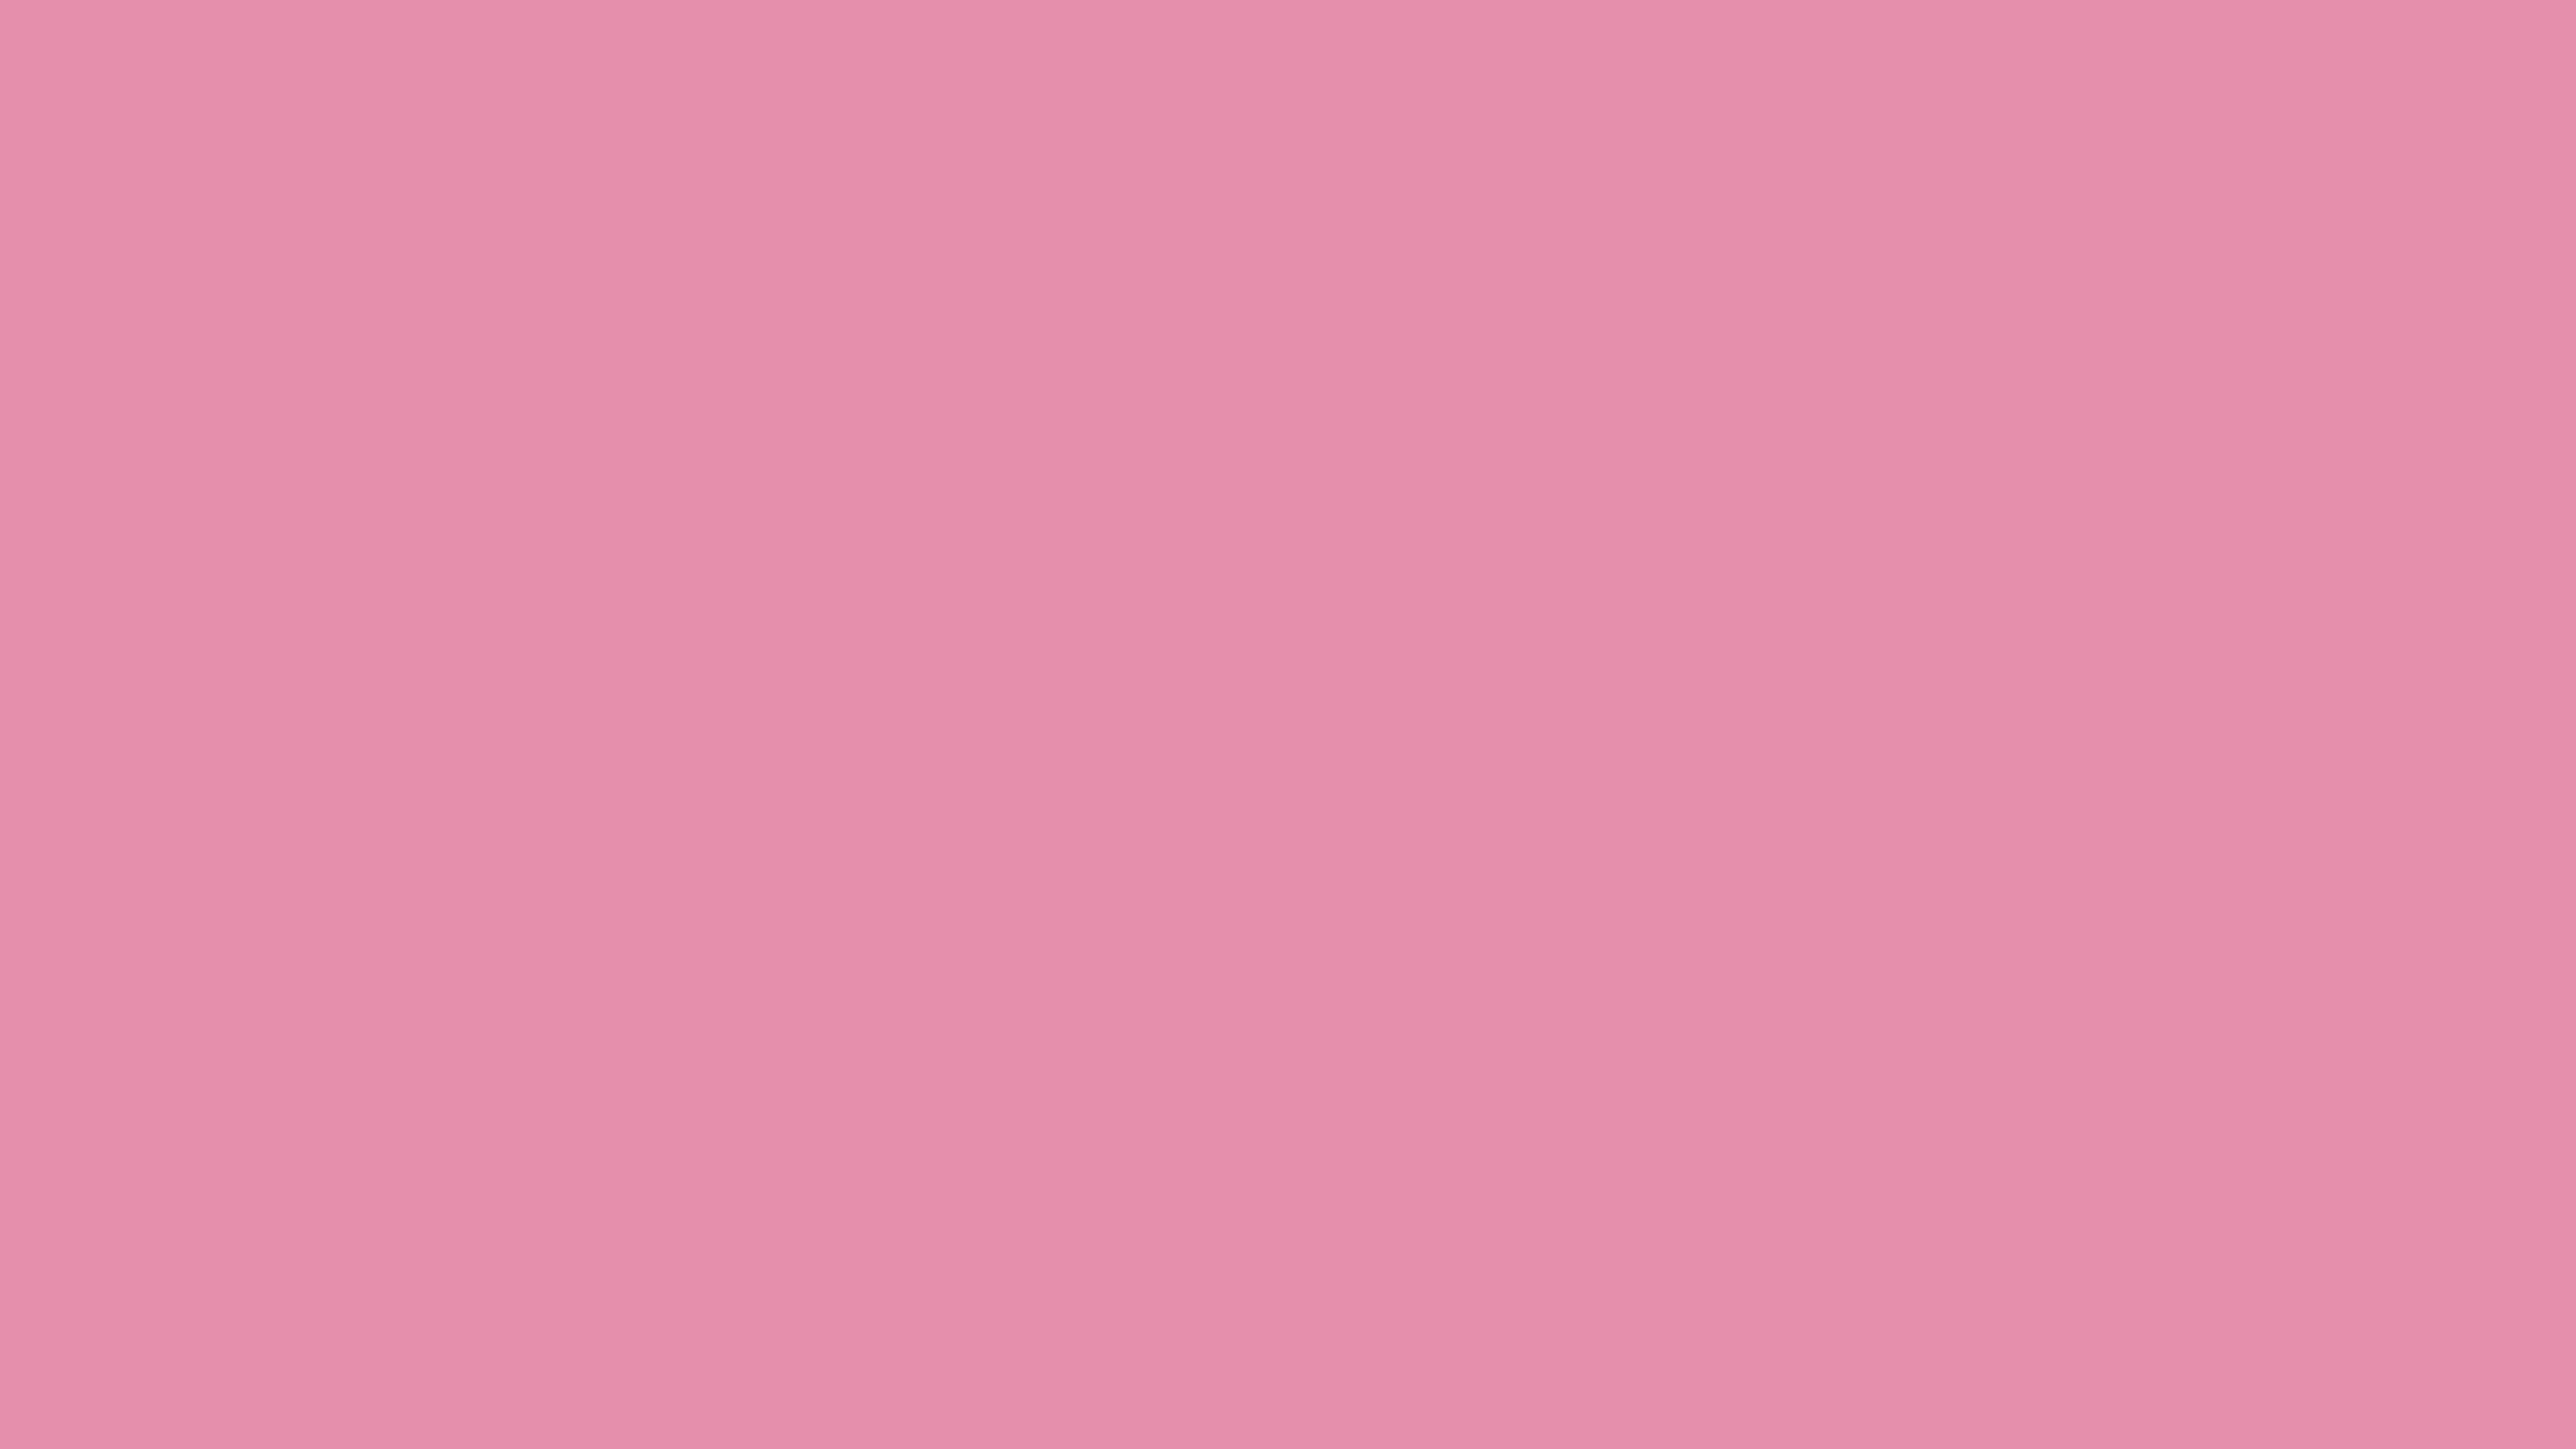 4096x2304 Charm Pink Solid Color Background